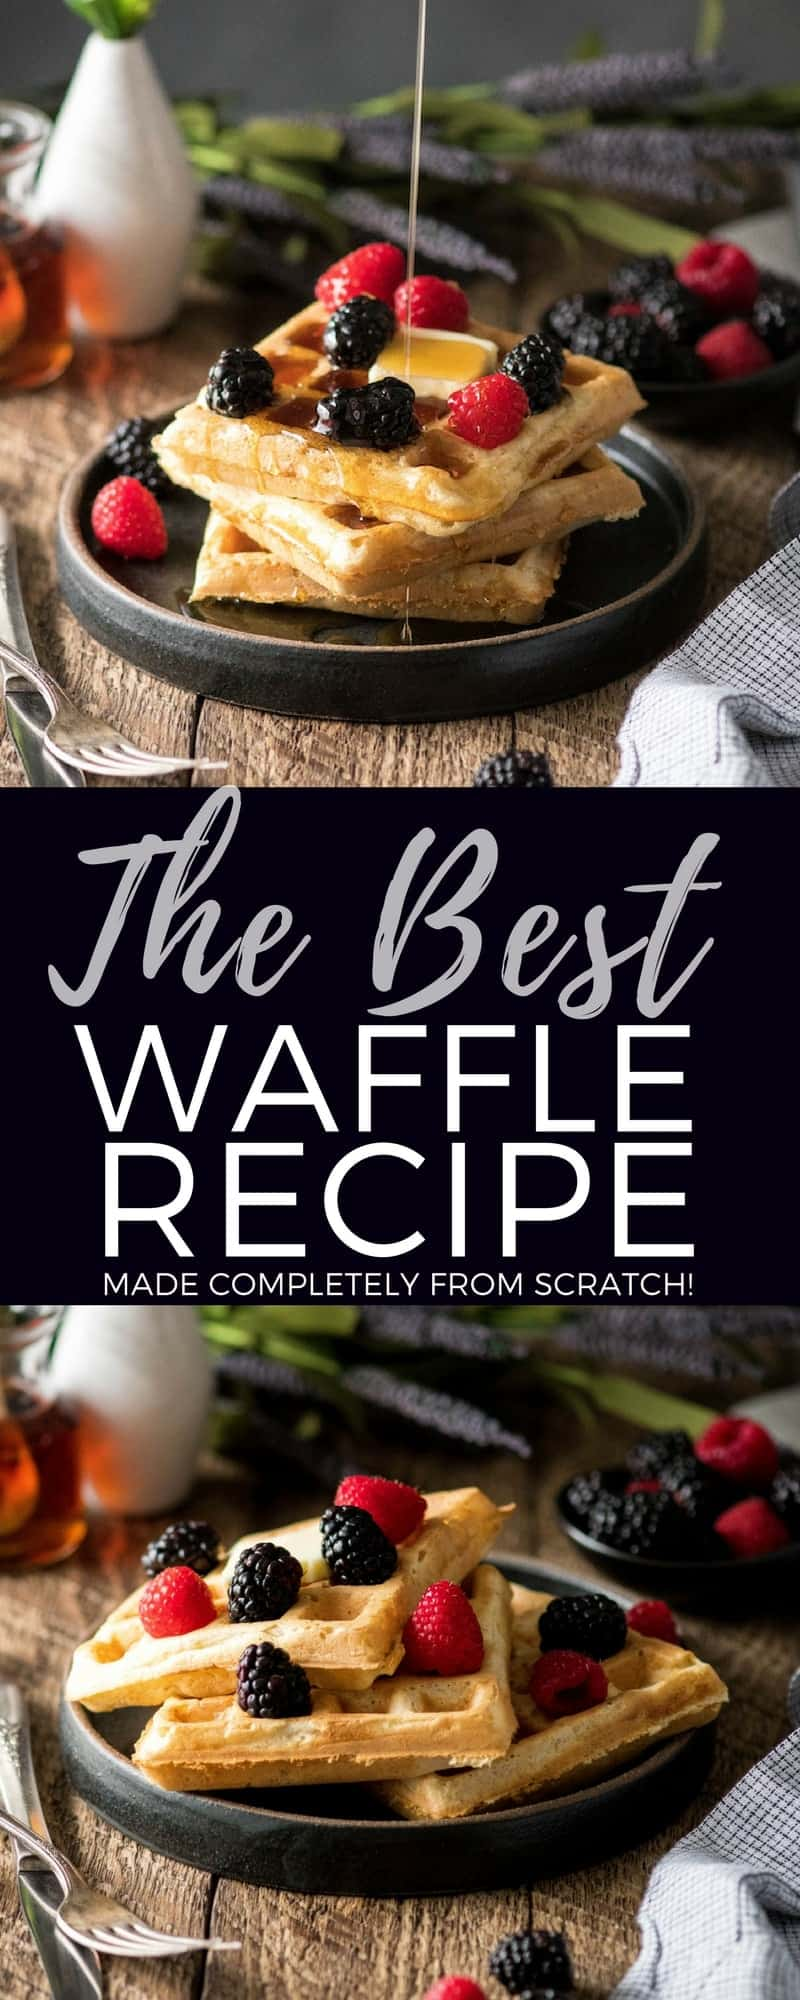 Are you ready for the Best Waffles Recipe EVER?! These golden-brown, crispy, irresistibly fluffy waffles turn out perfectly every single time! They're made completely from scratch, freeze beautifully, and are lightened up by using applesauce in the batter! Plus this recipe makes a HUGE batch, so you will definitely have leftovers to enjoy all week long! #waffles #recipe #fromscratch #freezerfriendly #breakfast